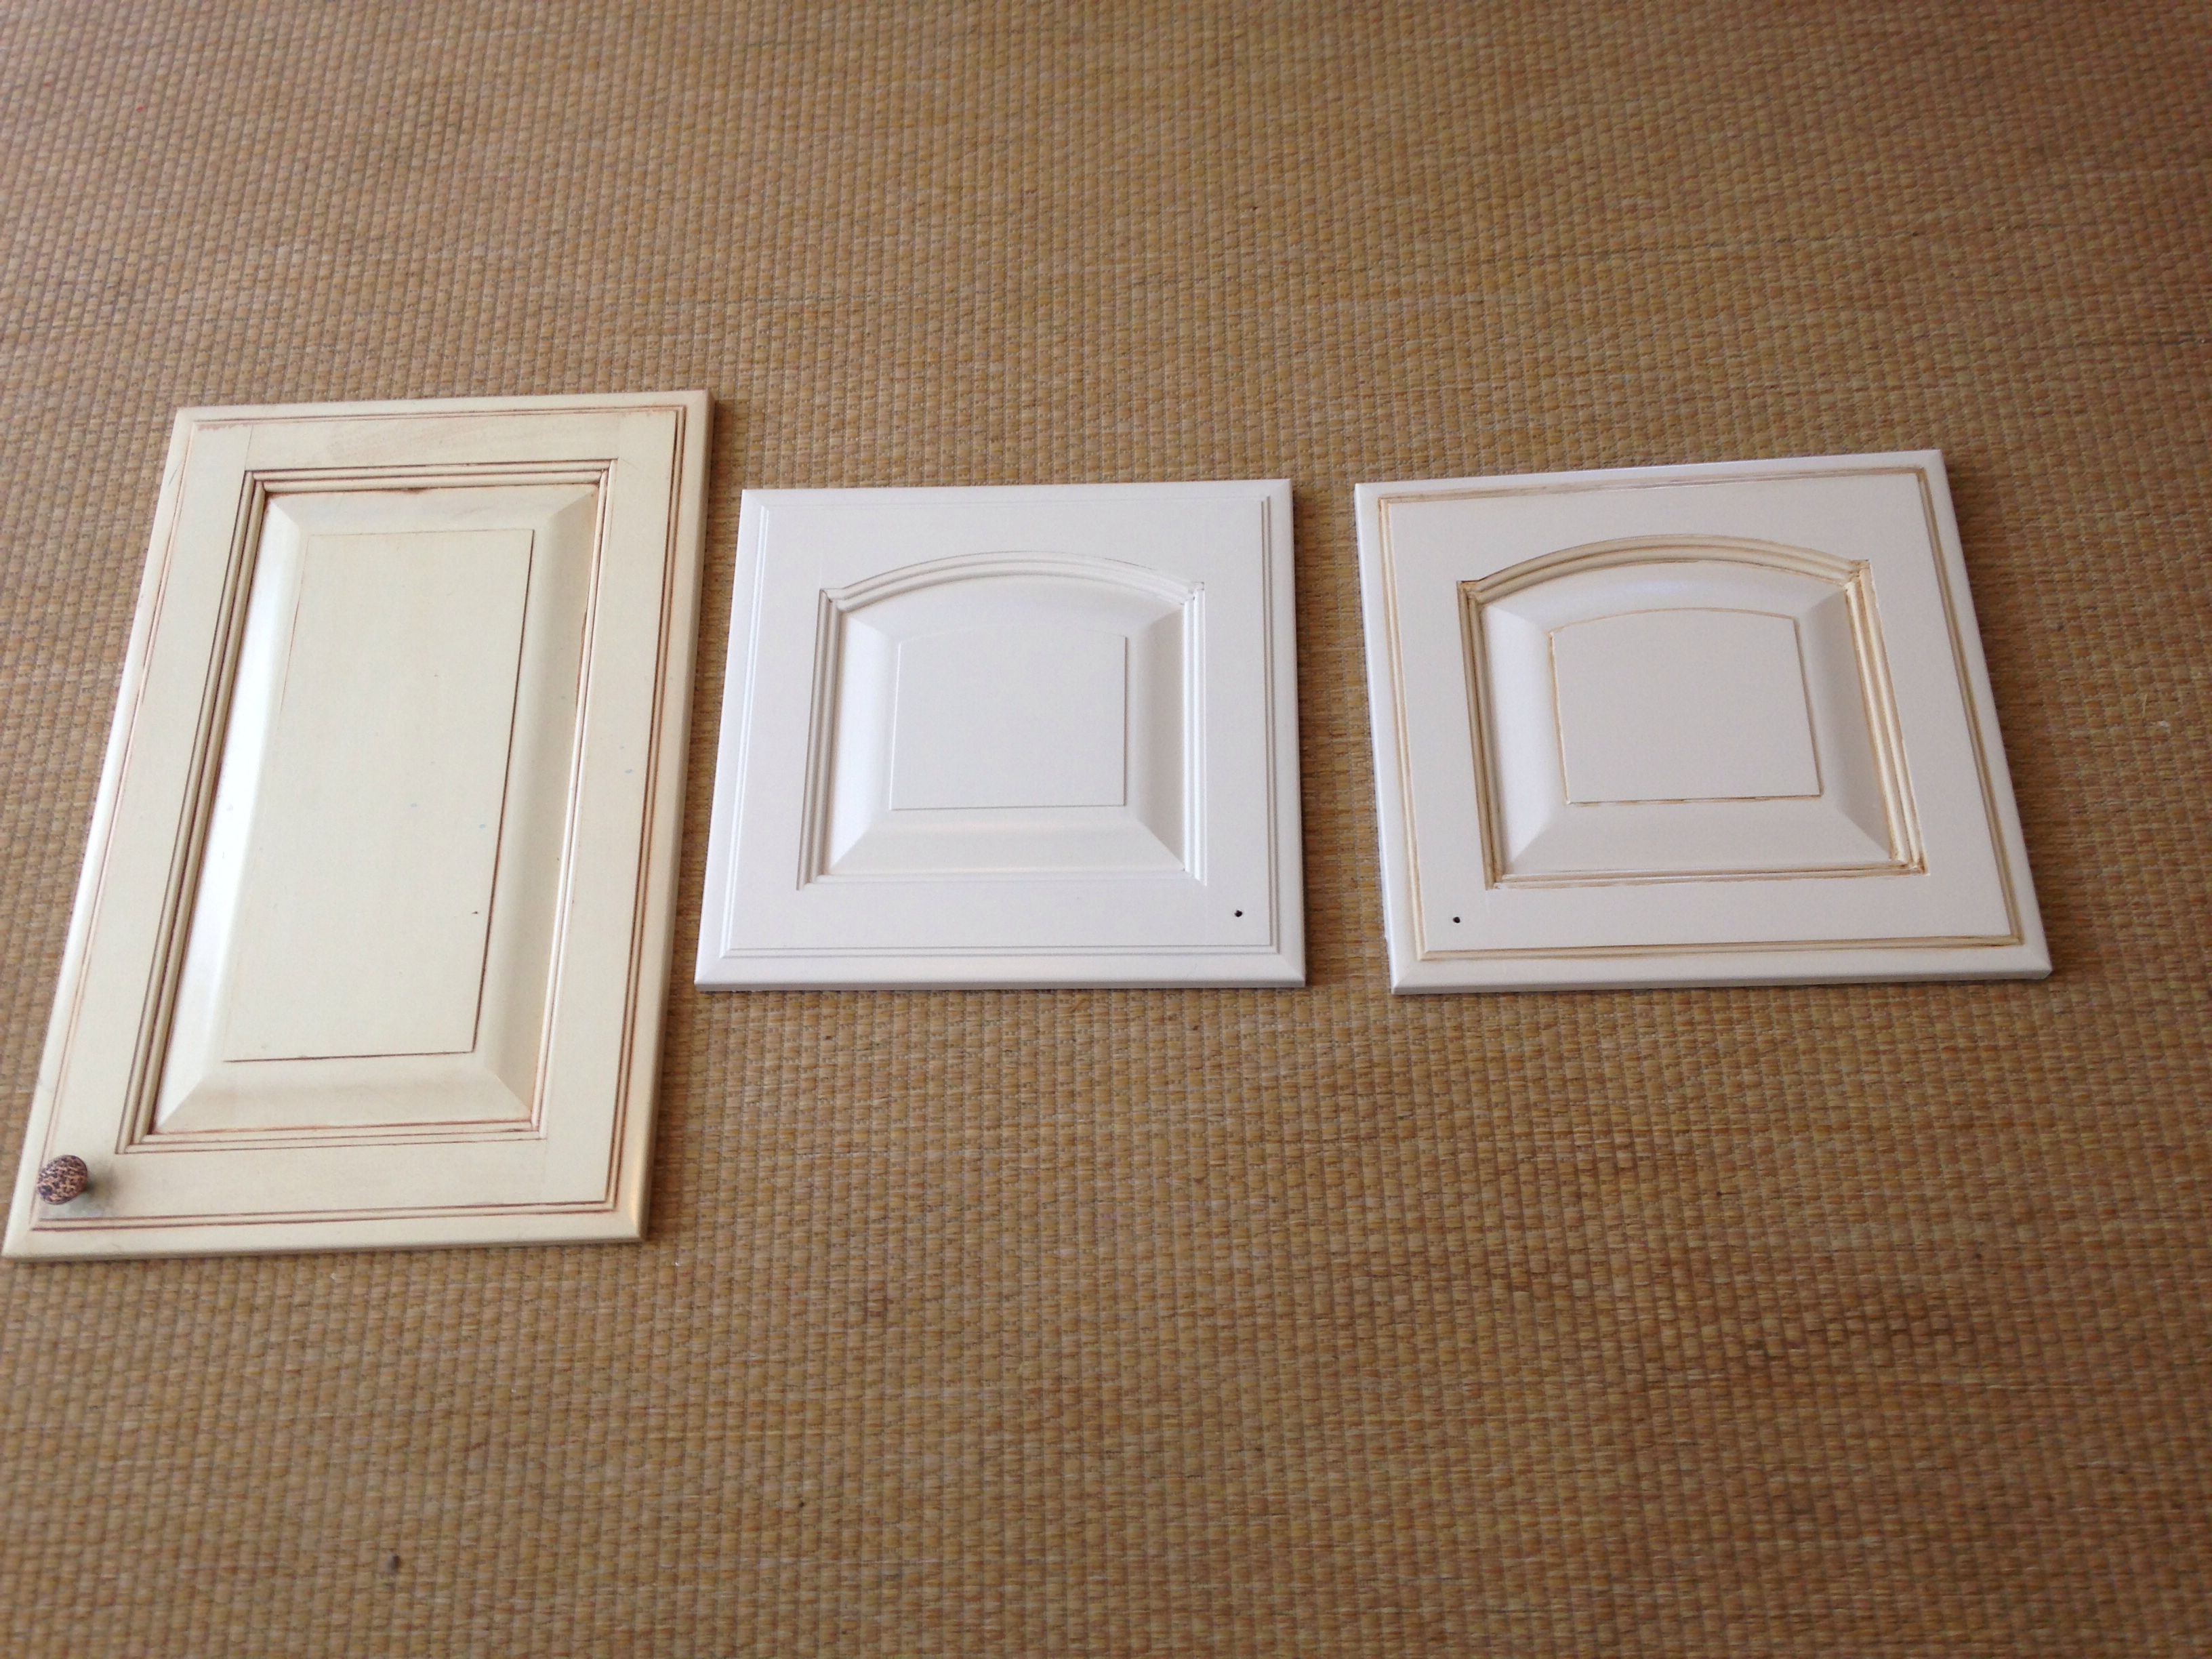 Rustoleum cabinet refinish before with quilters white finish and